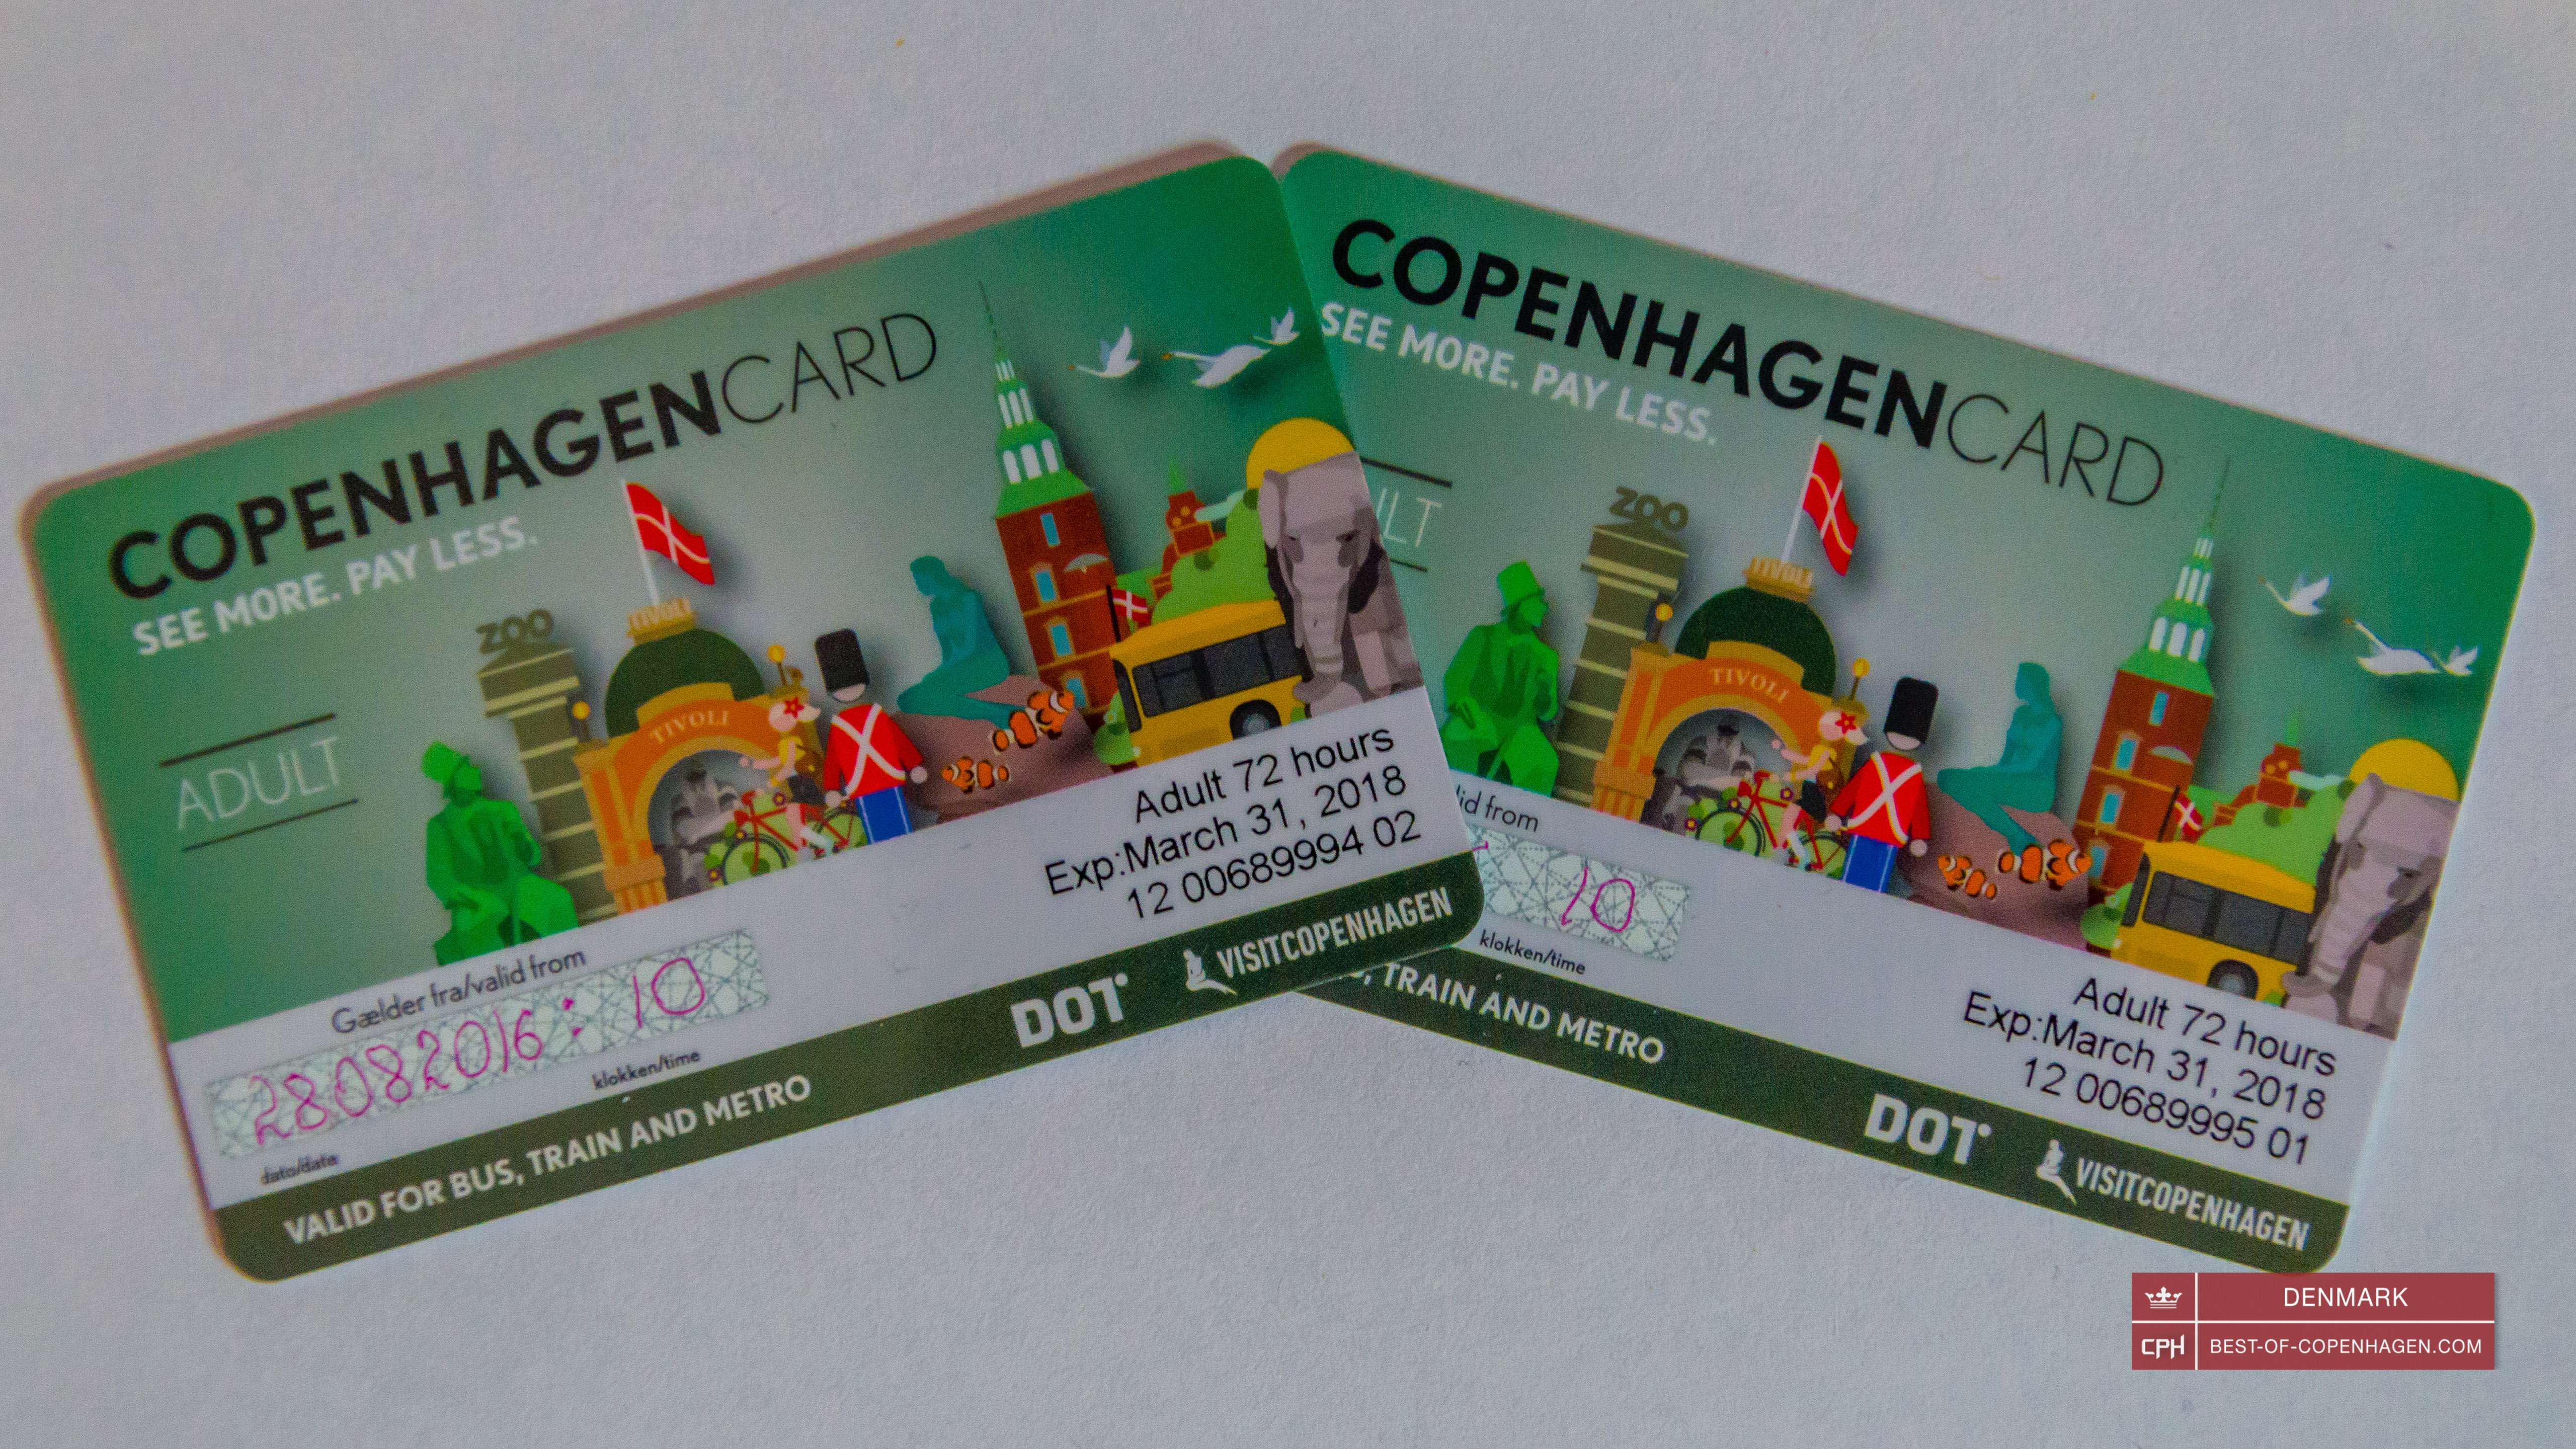 Copenhagen card for 72 hours, Denmark